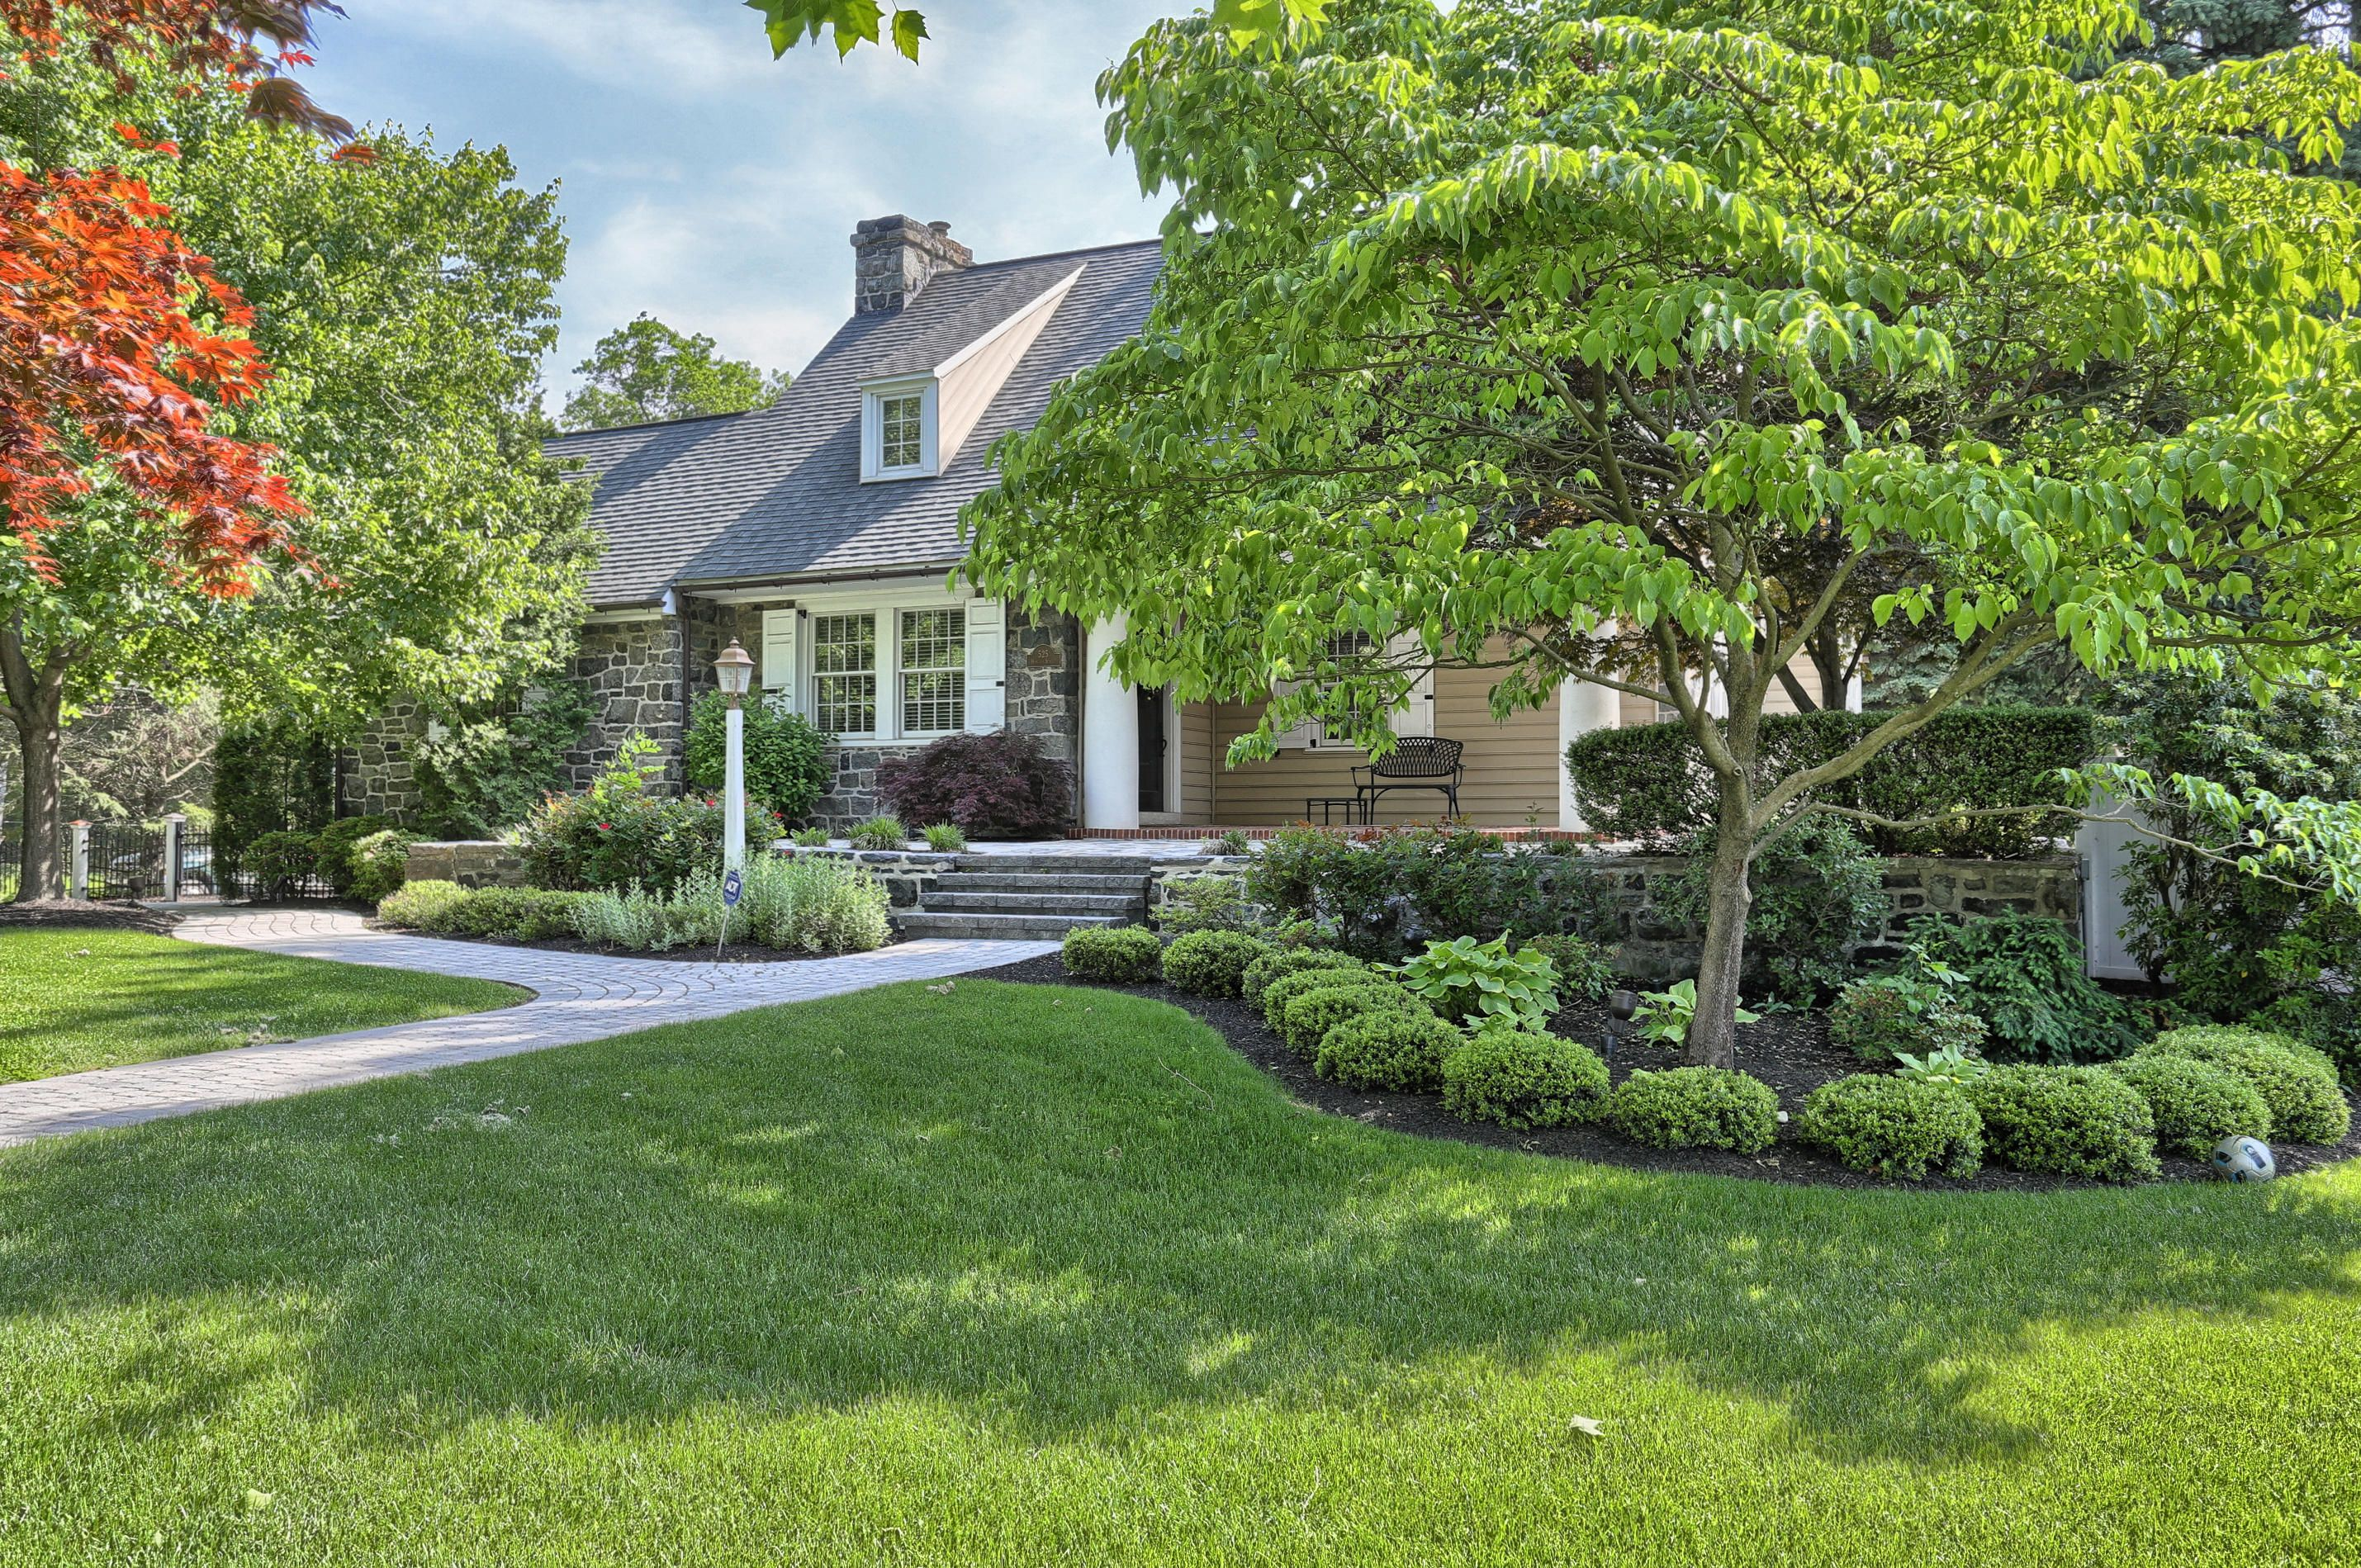 Landscaping From One Of My Favorite Houses In Elizabethtown Pa Exterior Landscape House